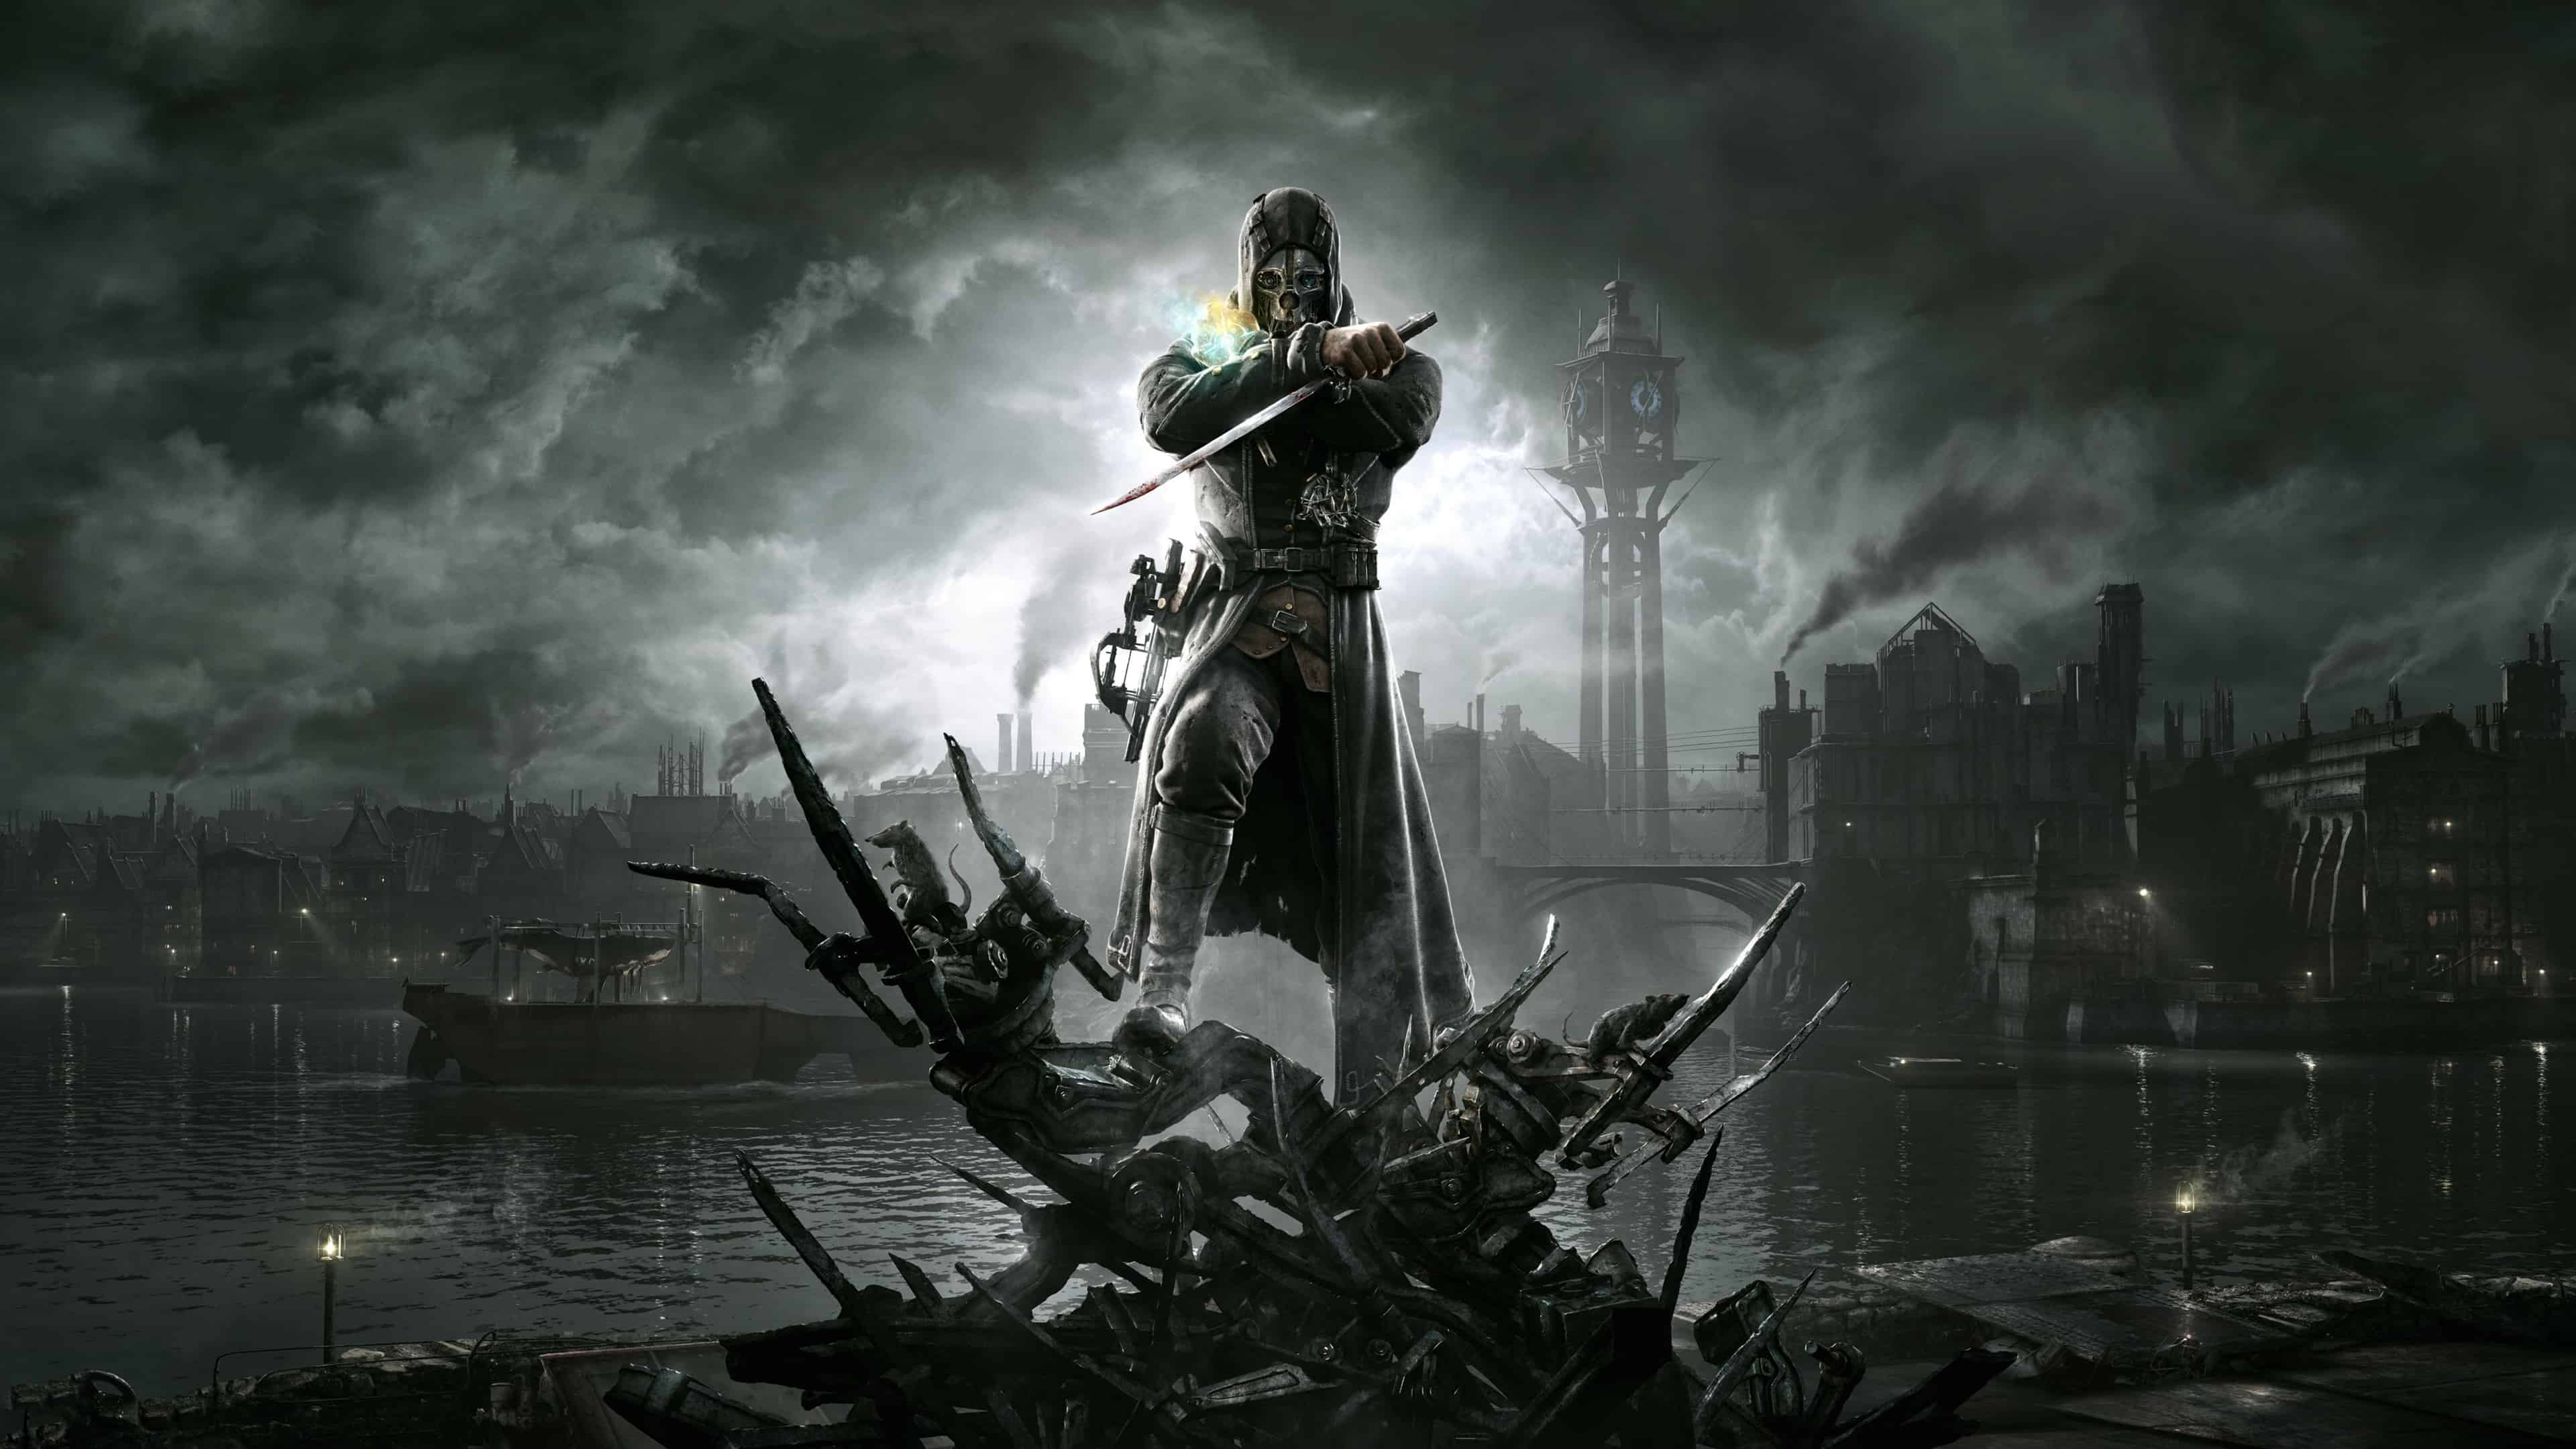 dishonored cover uhd 4k wallpaper